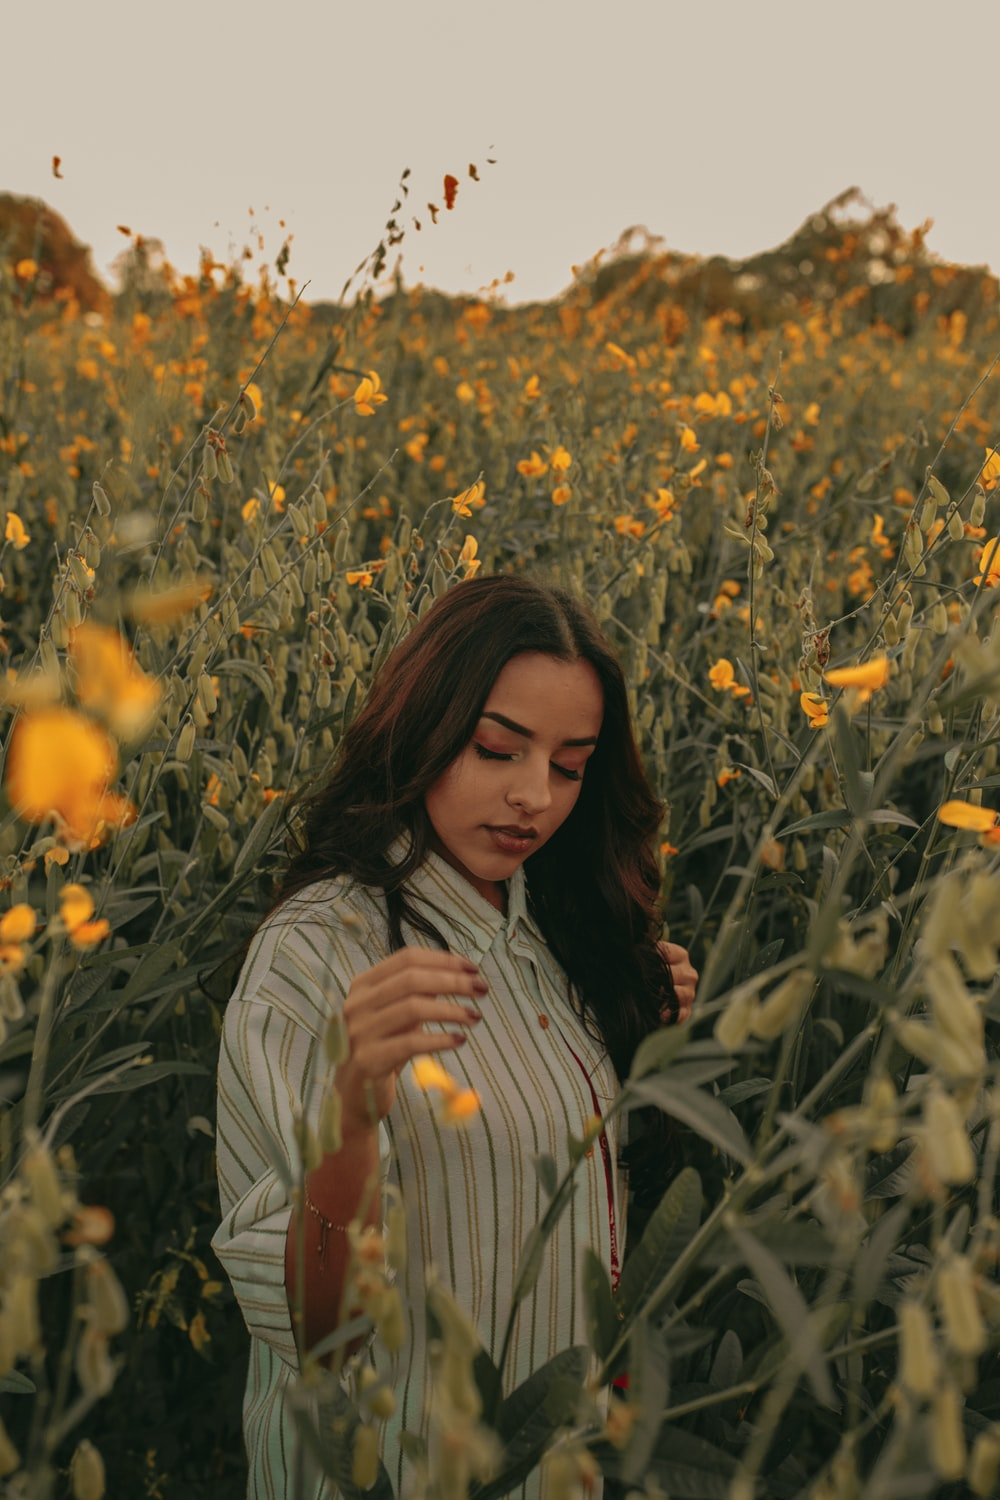 woman in pinstriped shirt standing between yellow flowers